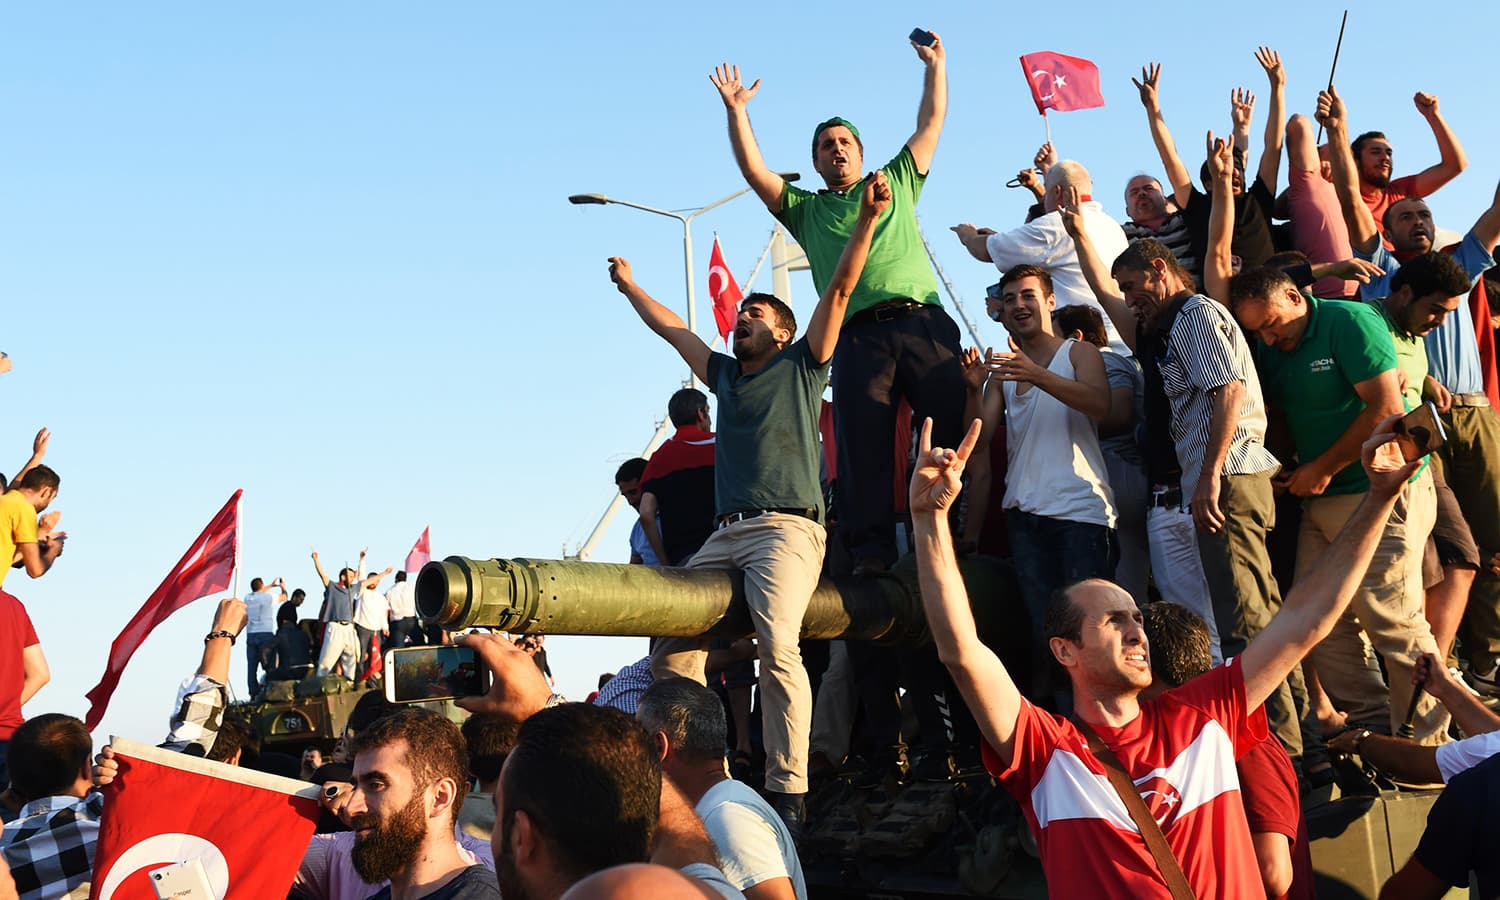 People rally on a tank after they take over military position on the Bosphorus bridge in Istanbul on July 16. � AFP